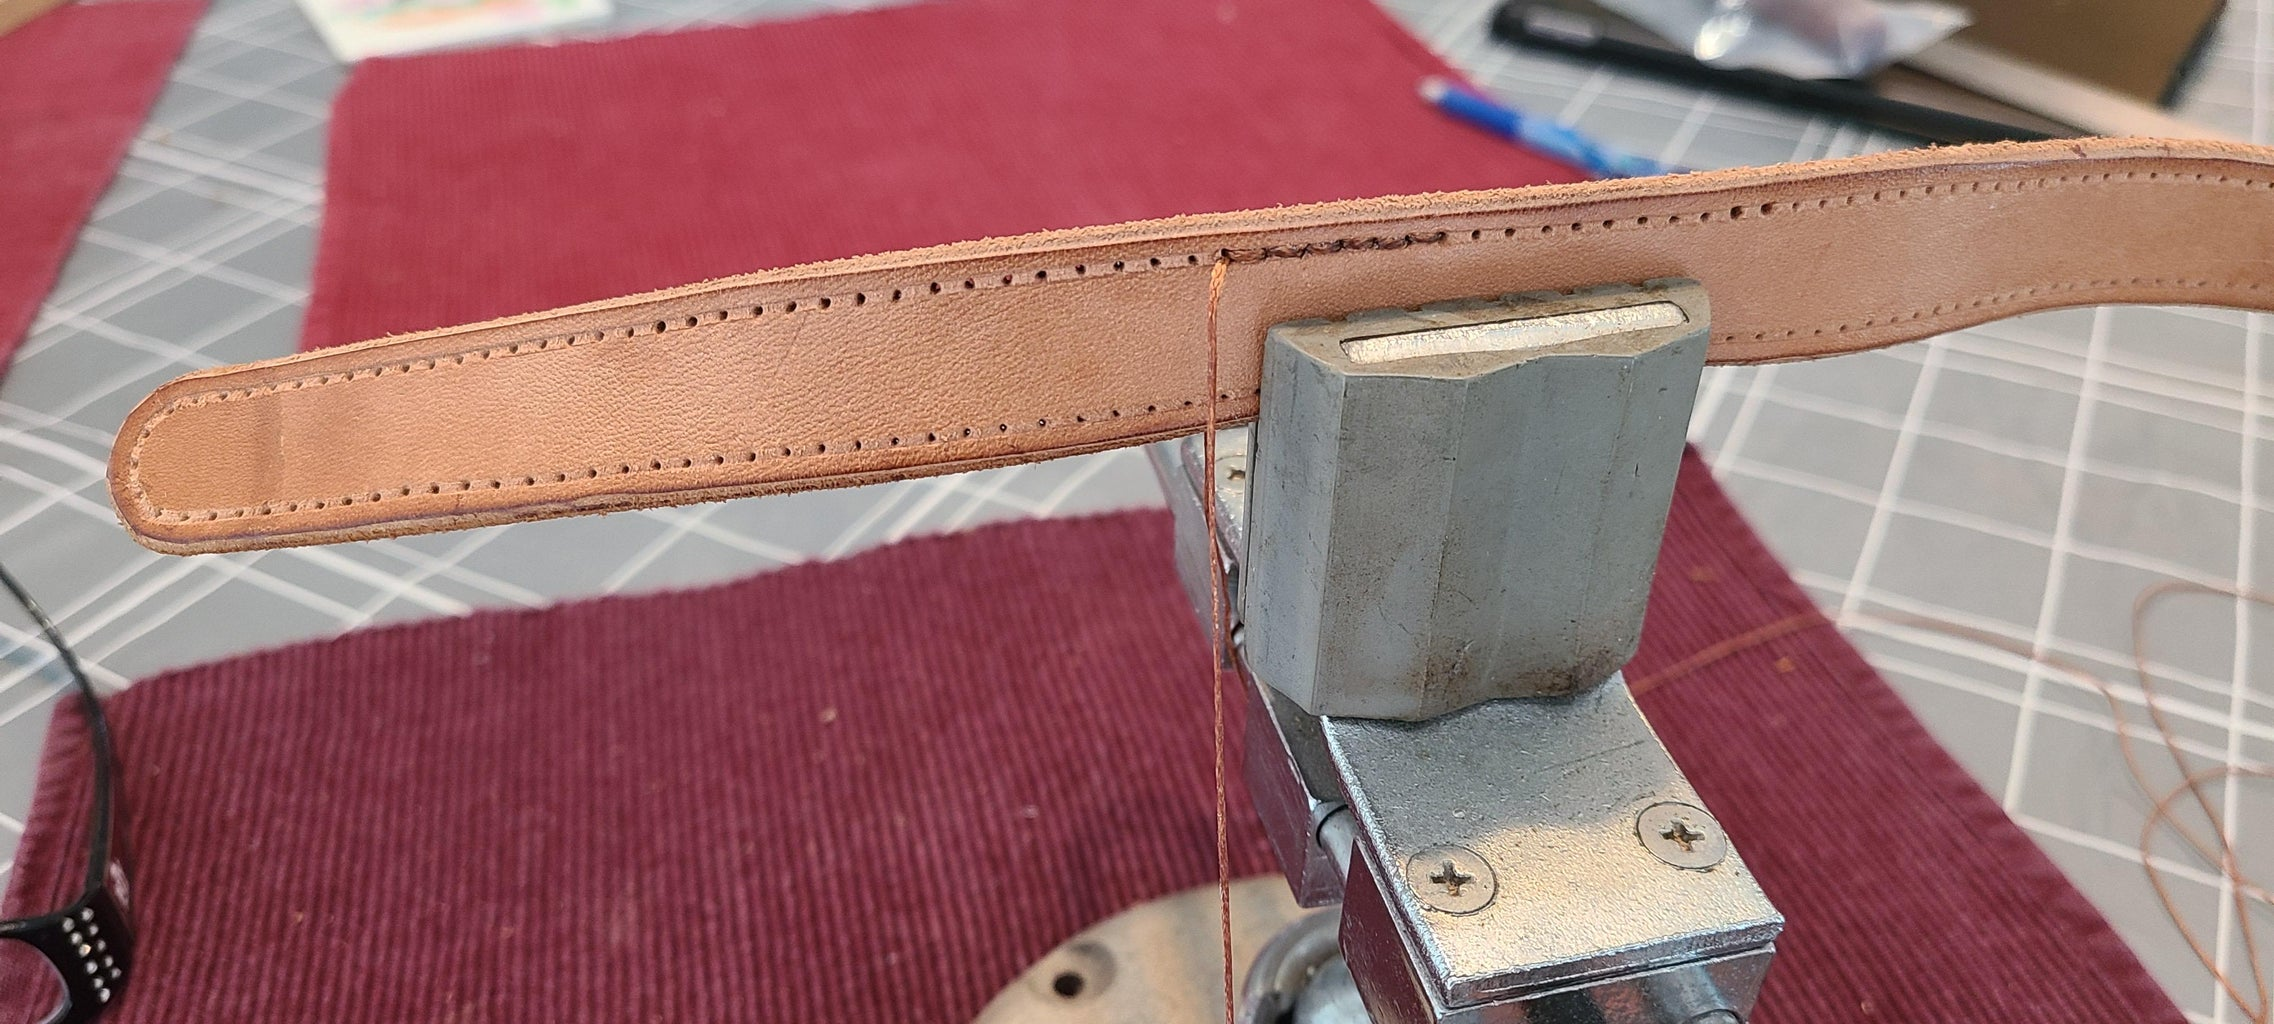 Making the Leather Strap